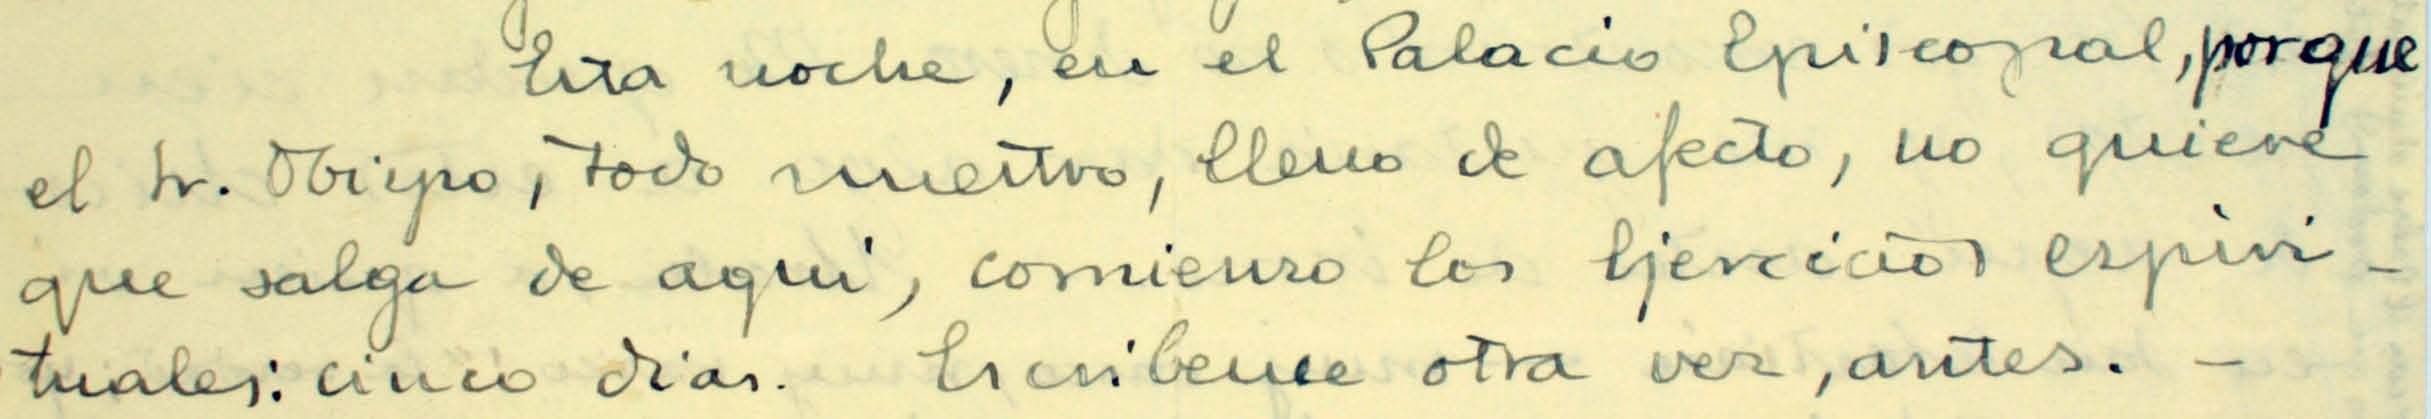 Letter of St Josemaria Escrivá to Juan Jiménez Vargas (18-12-1937) in which he mentions the spiritual exercises he did in Pamplona, after the march through the Pyrenees.